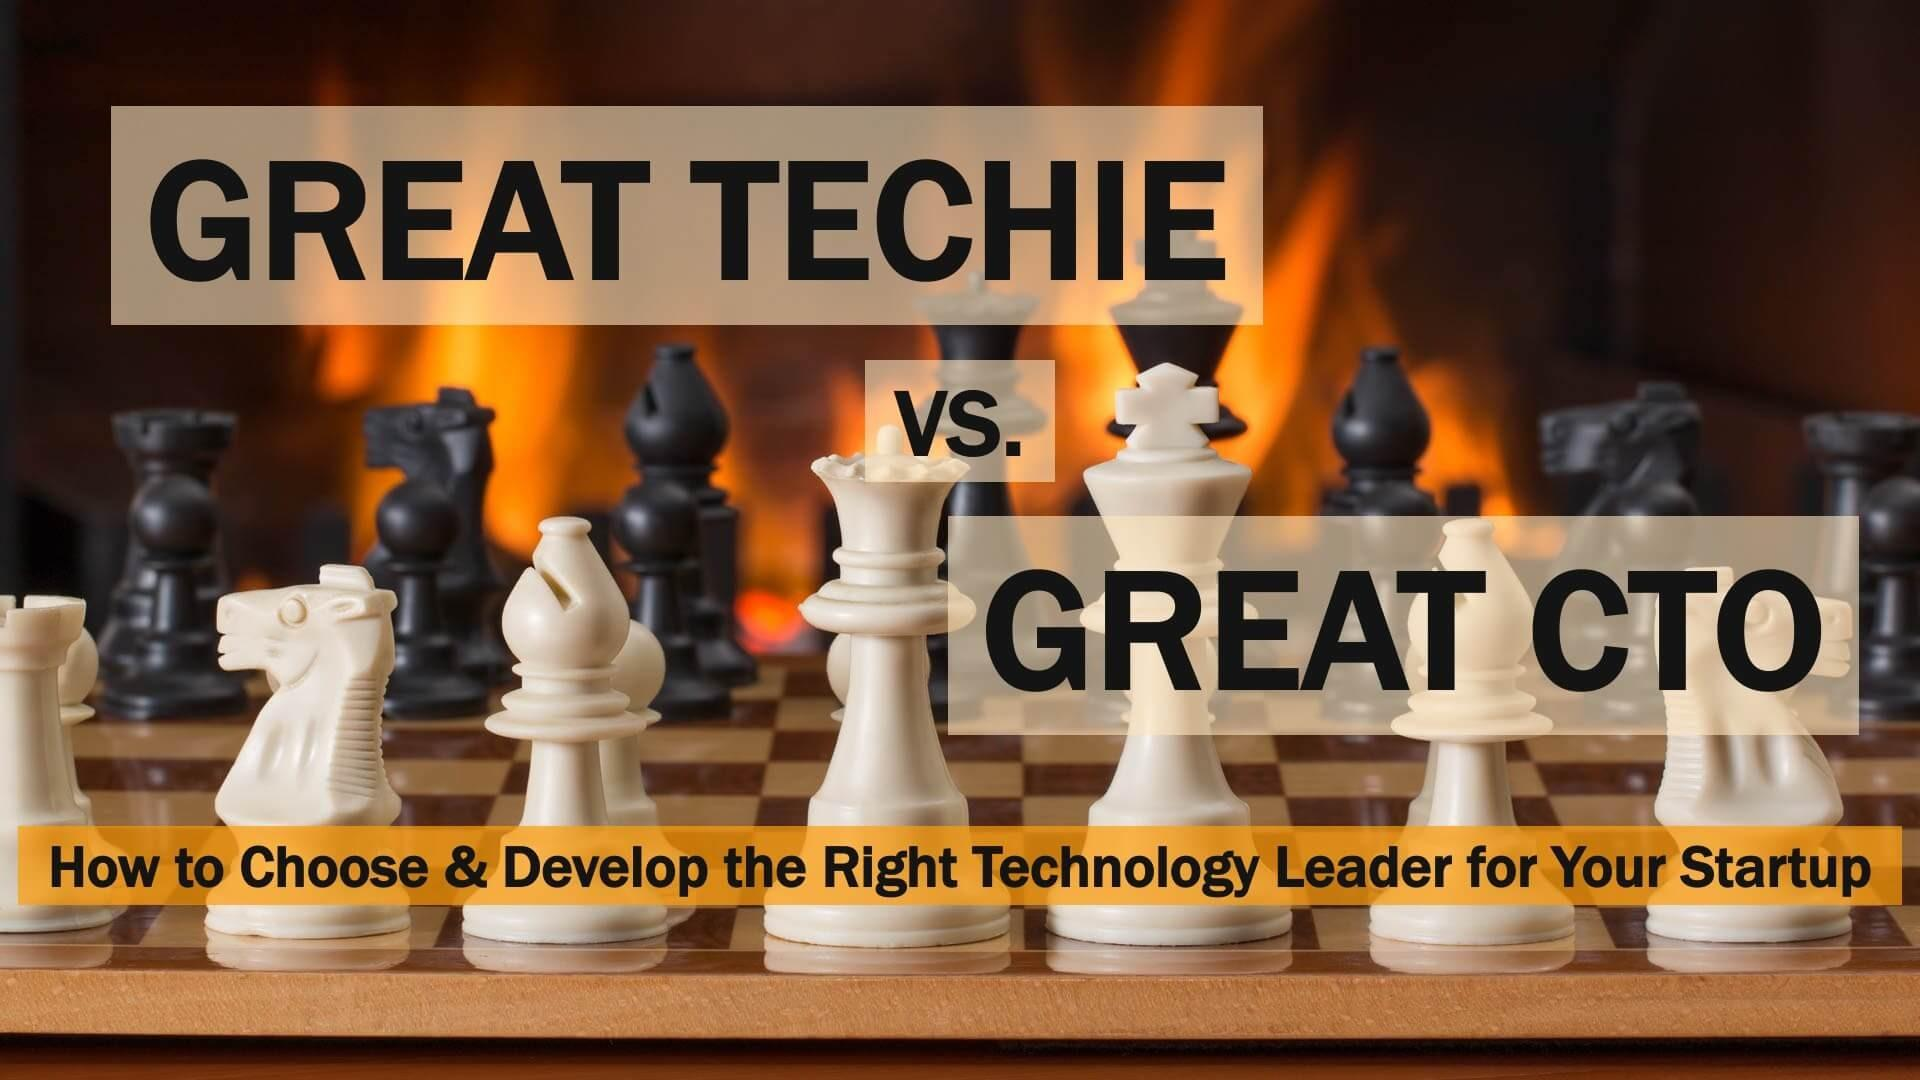 Great Techie vs. Great CTO - How to choose the right technology leader for your startup